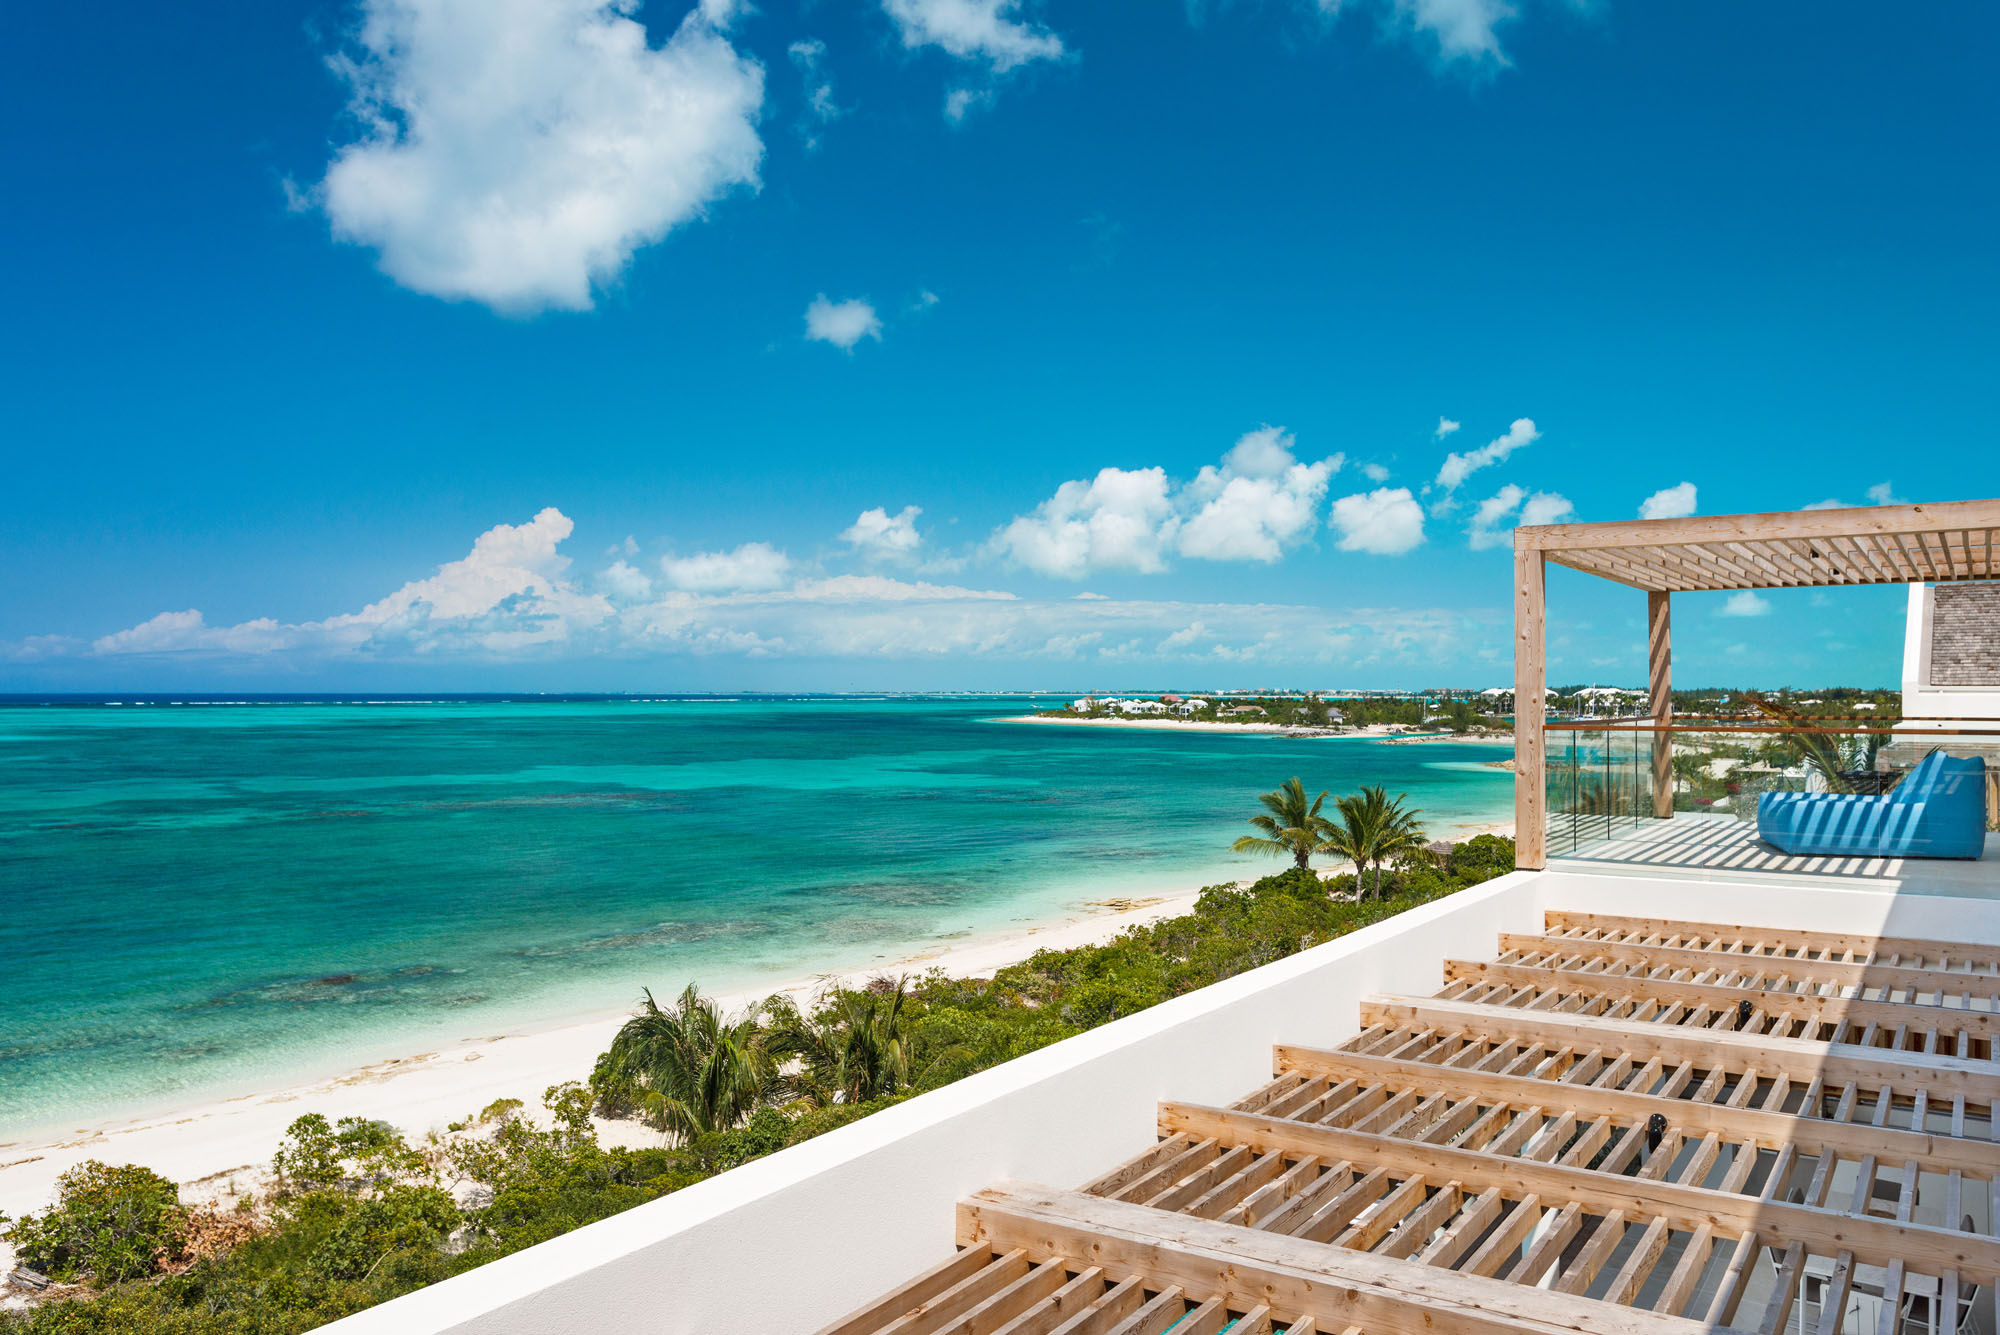 These luxury Caribbean beach villas provide everything a family may need while on vacation.